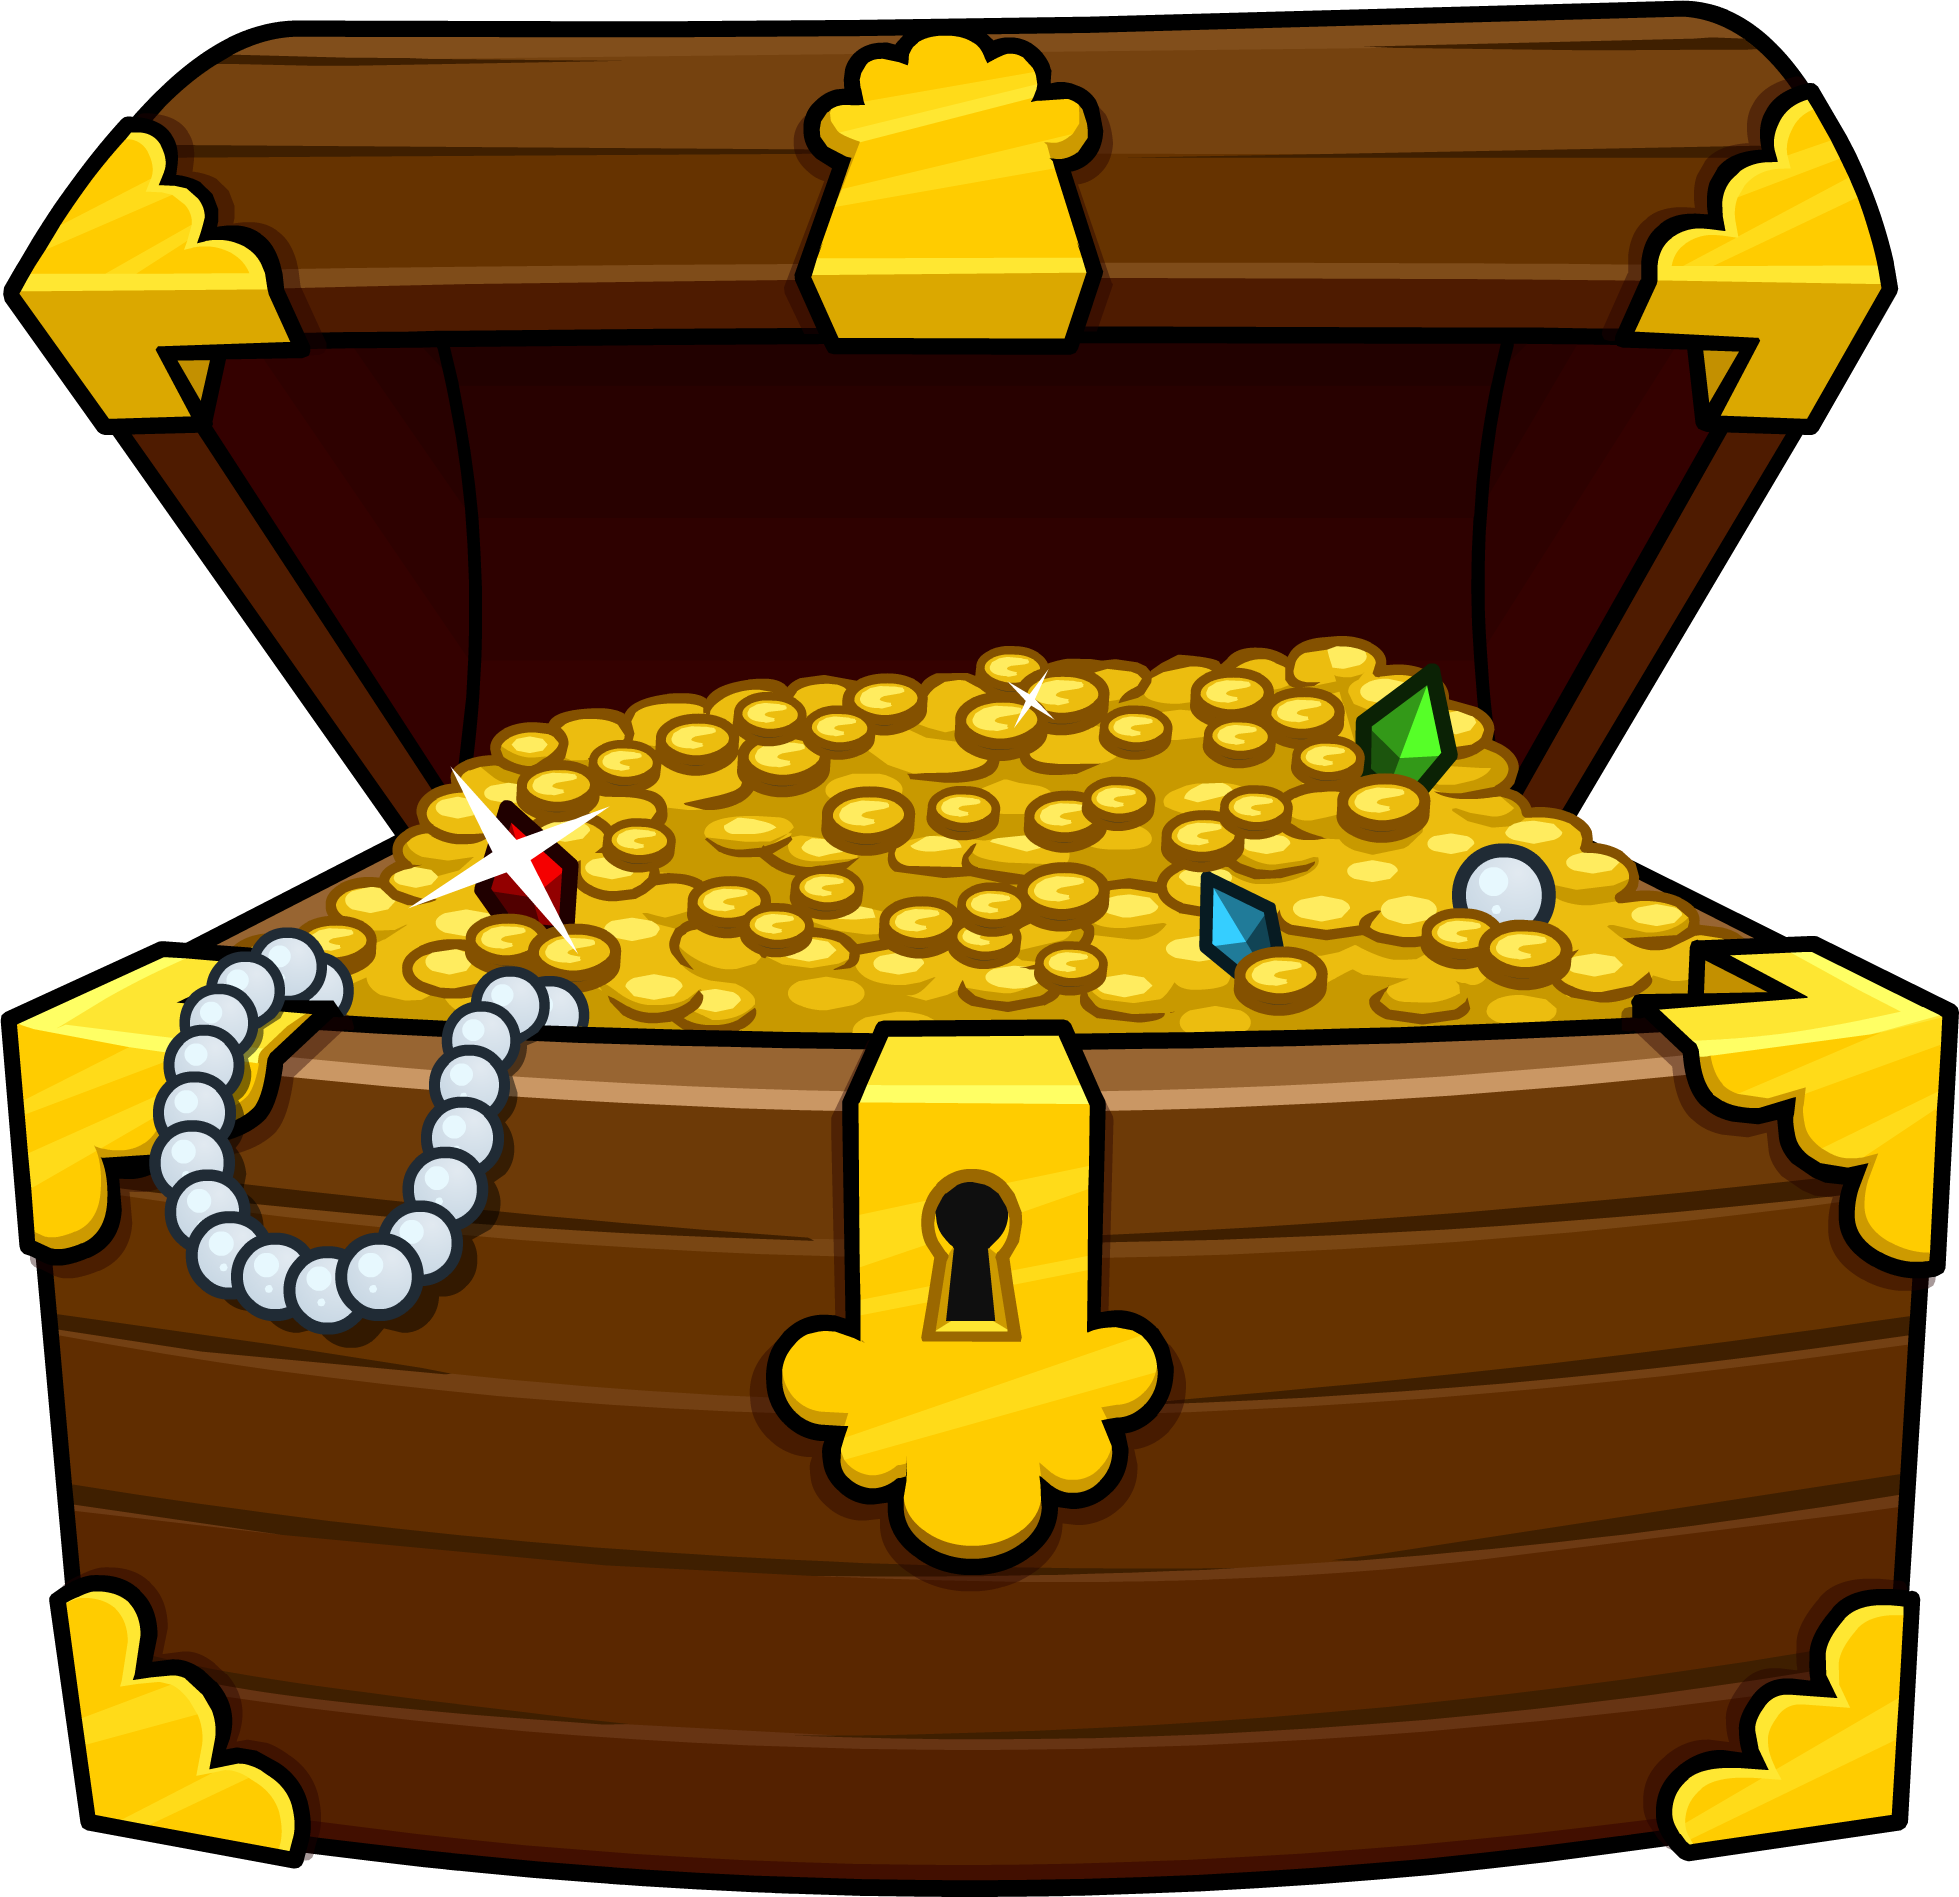 png royalty free download Image unreleased member icon. Chest clipart treasure room.